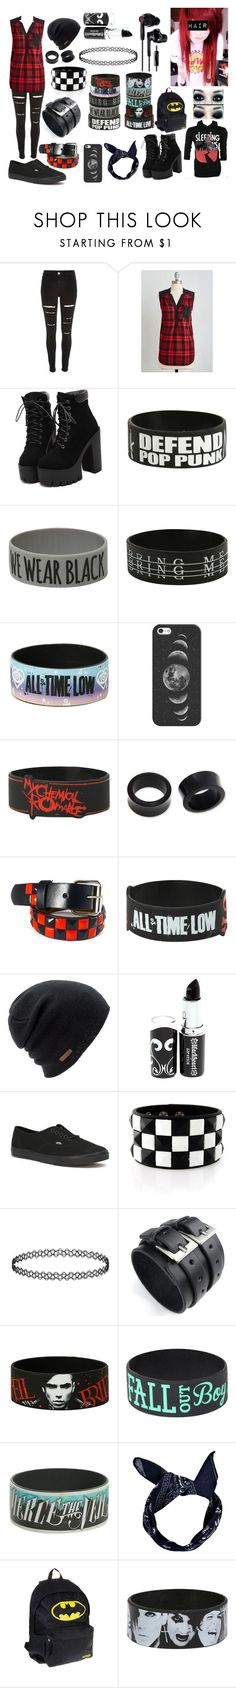 """Red Scene/Emo"" by abipatterson ❤ liked on Polyvore featuring River Island, Hot Topic, Coven, Casetify, NOVICA, Coal, Vans and Yurbuds"